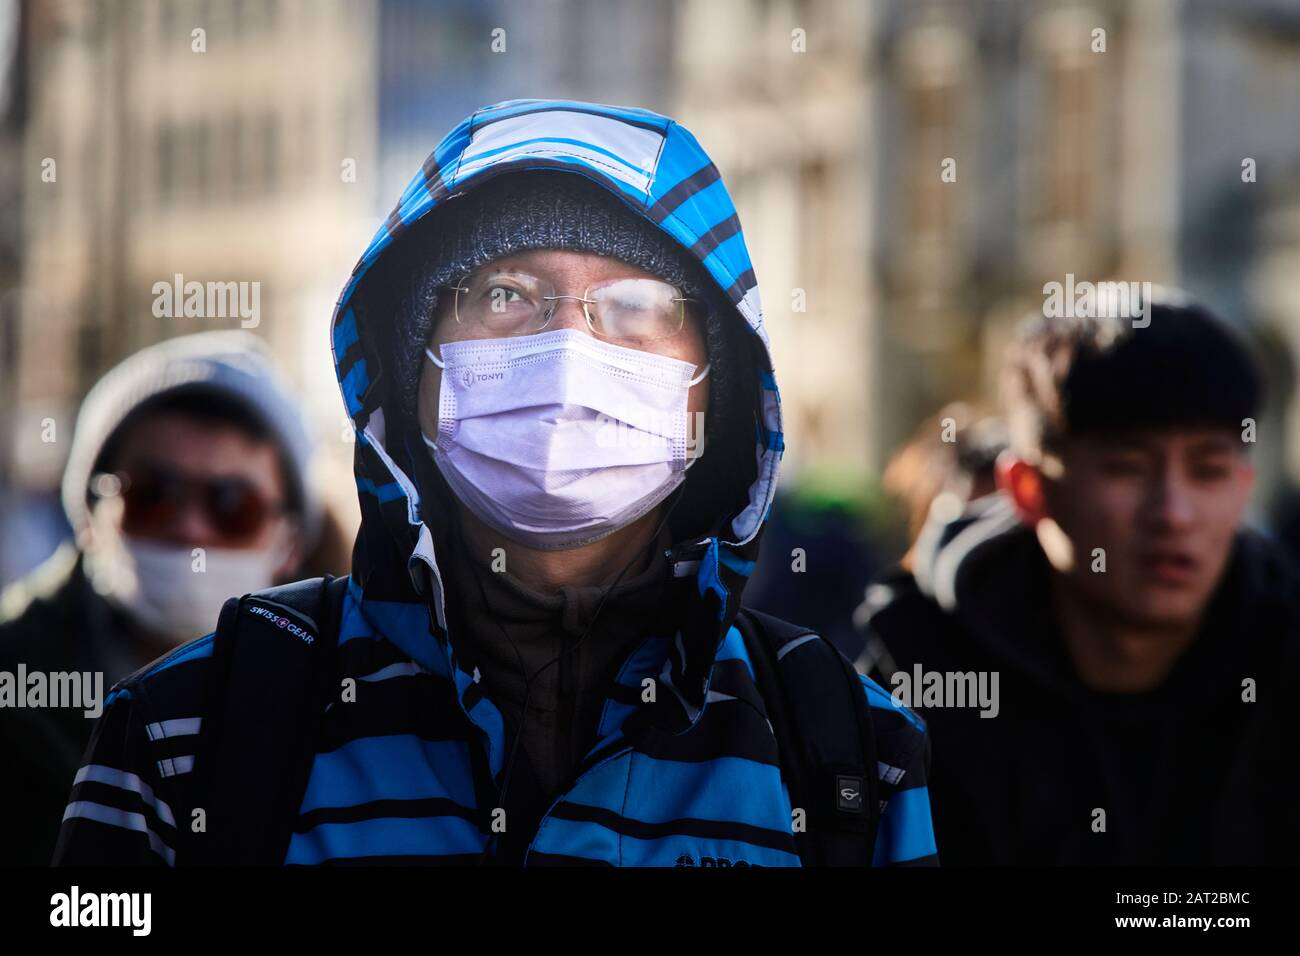 Face mask worn by a chinese tourist outside King's college, Cambridge, England, on 30 january 2020, to prevent catching the coronavirus flu. Stock Photo